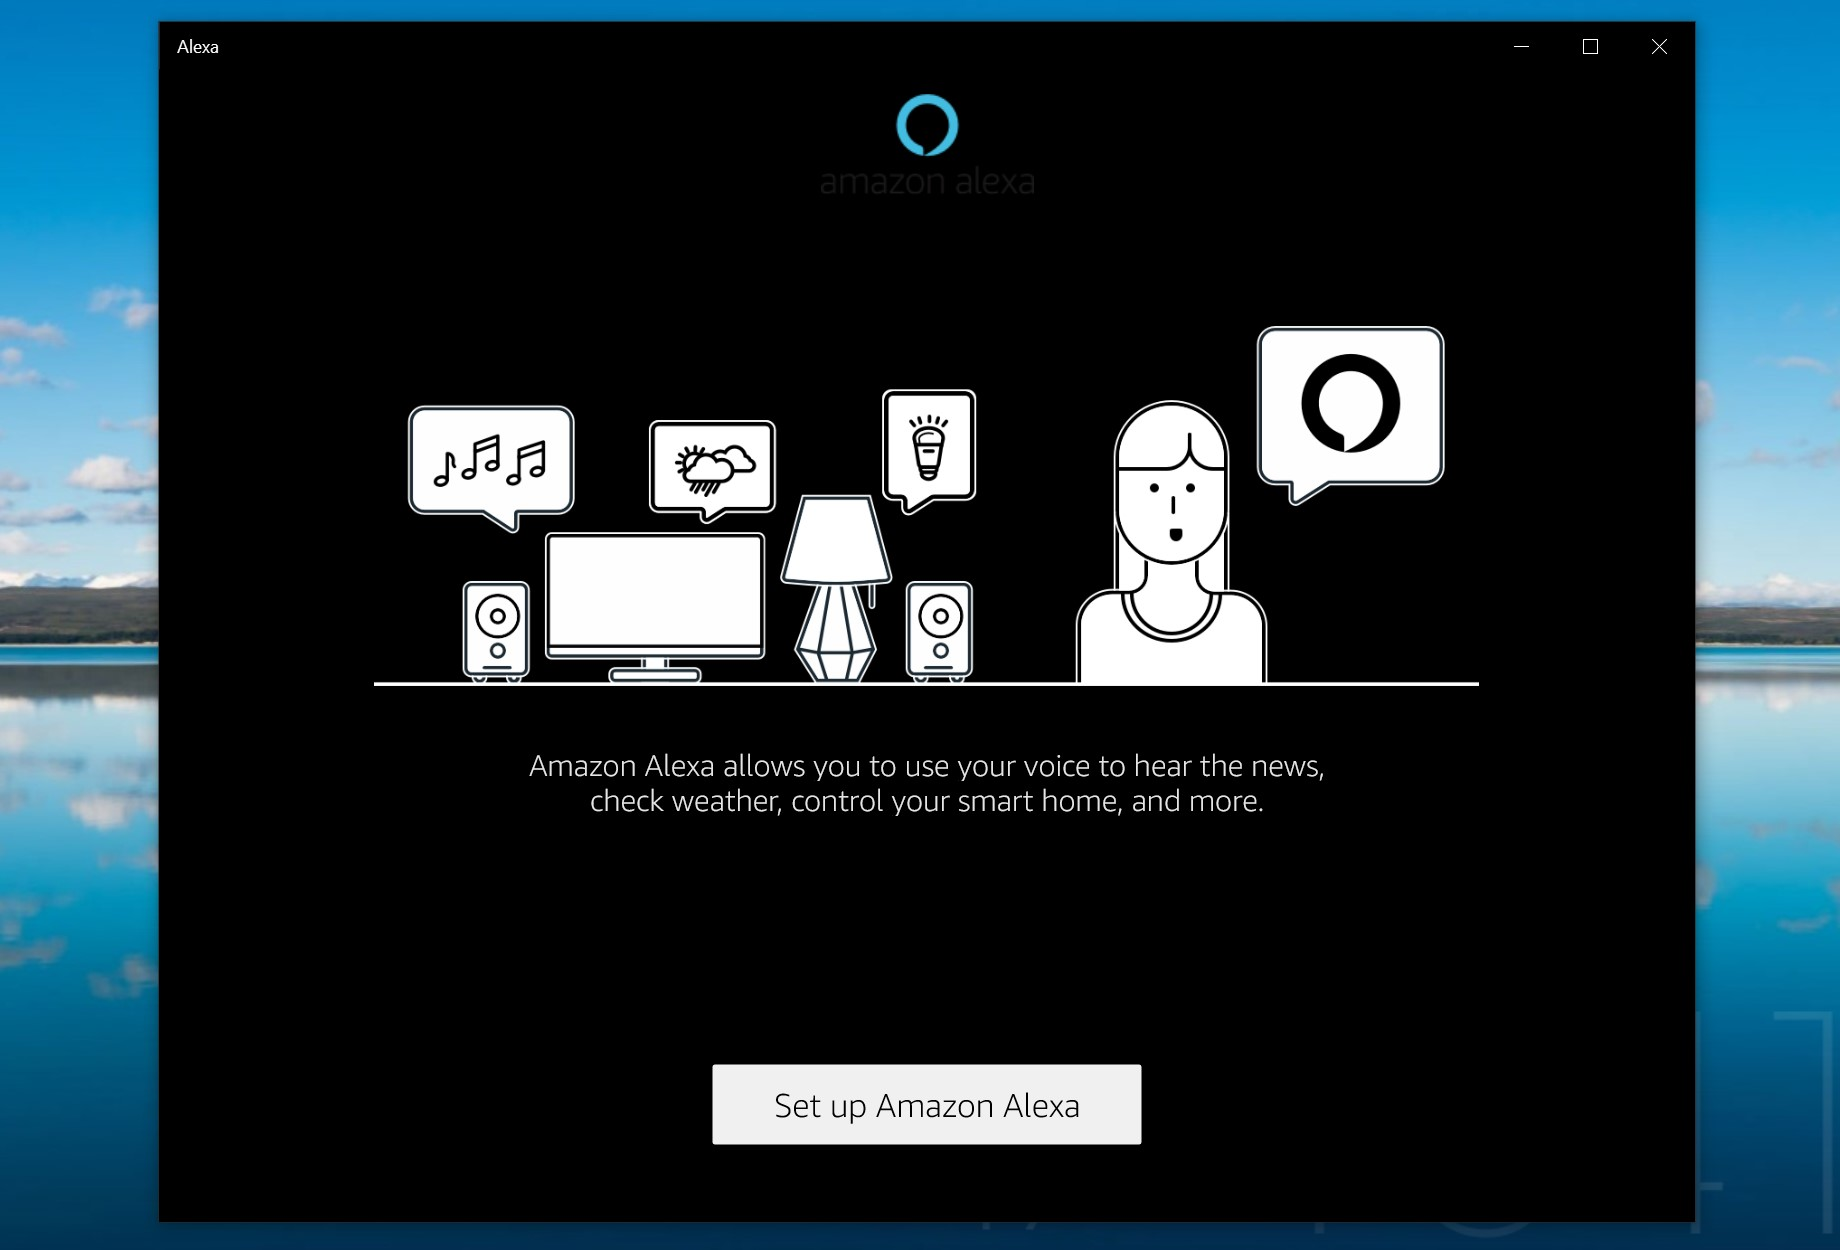 Amazon Alexa Windows 10 app ufficiale